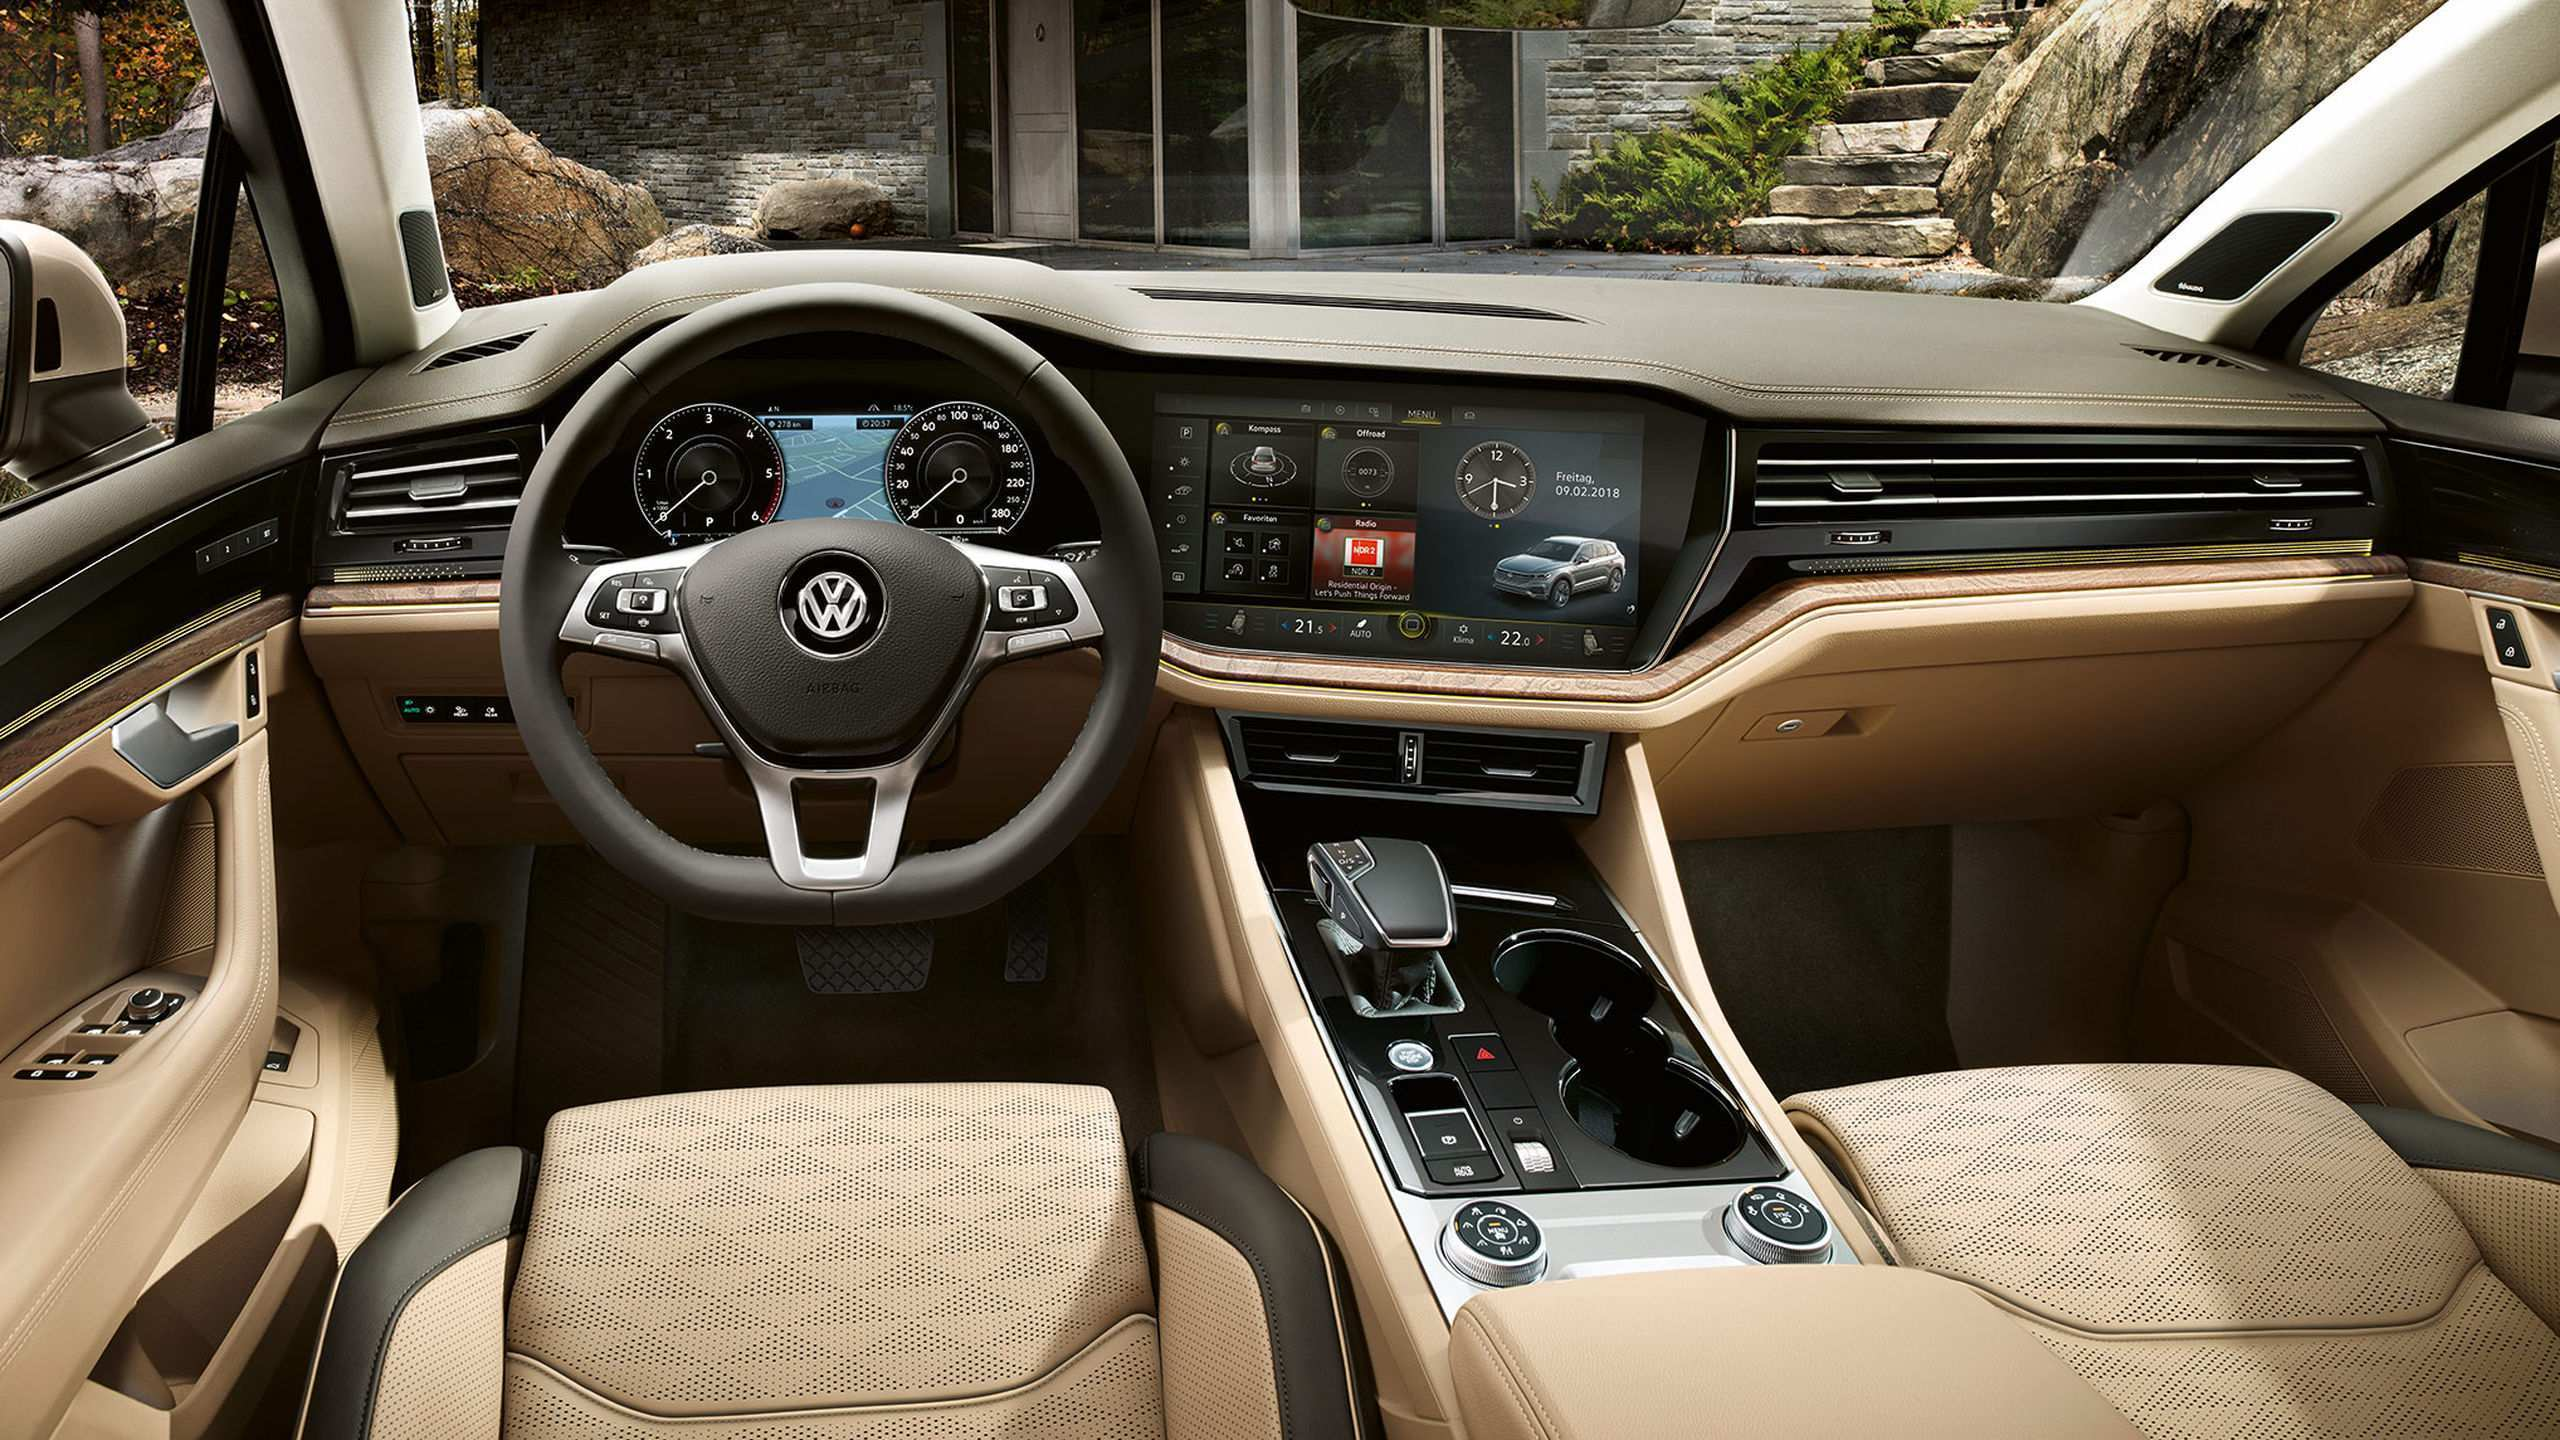 72 All New Vw Touareg 2019 Interior Ratings